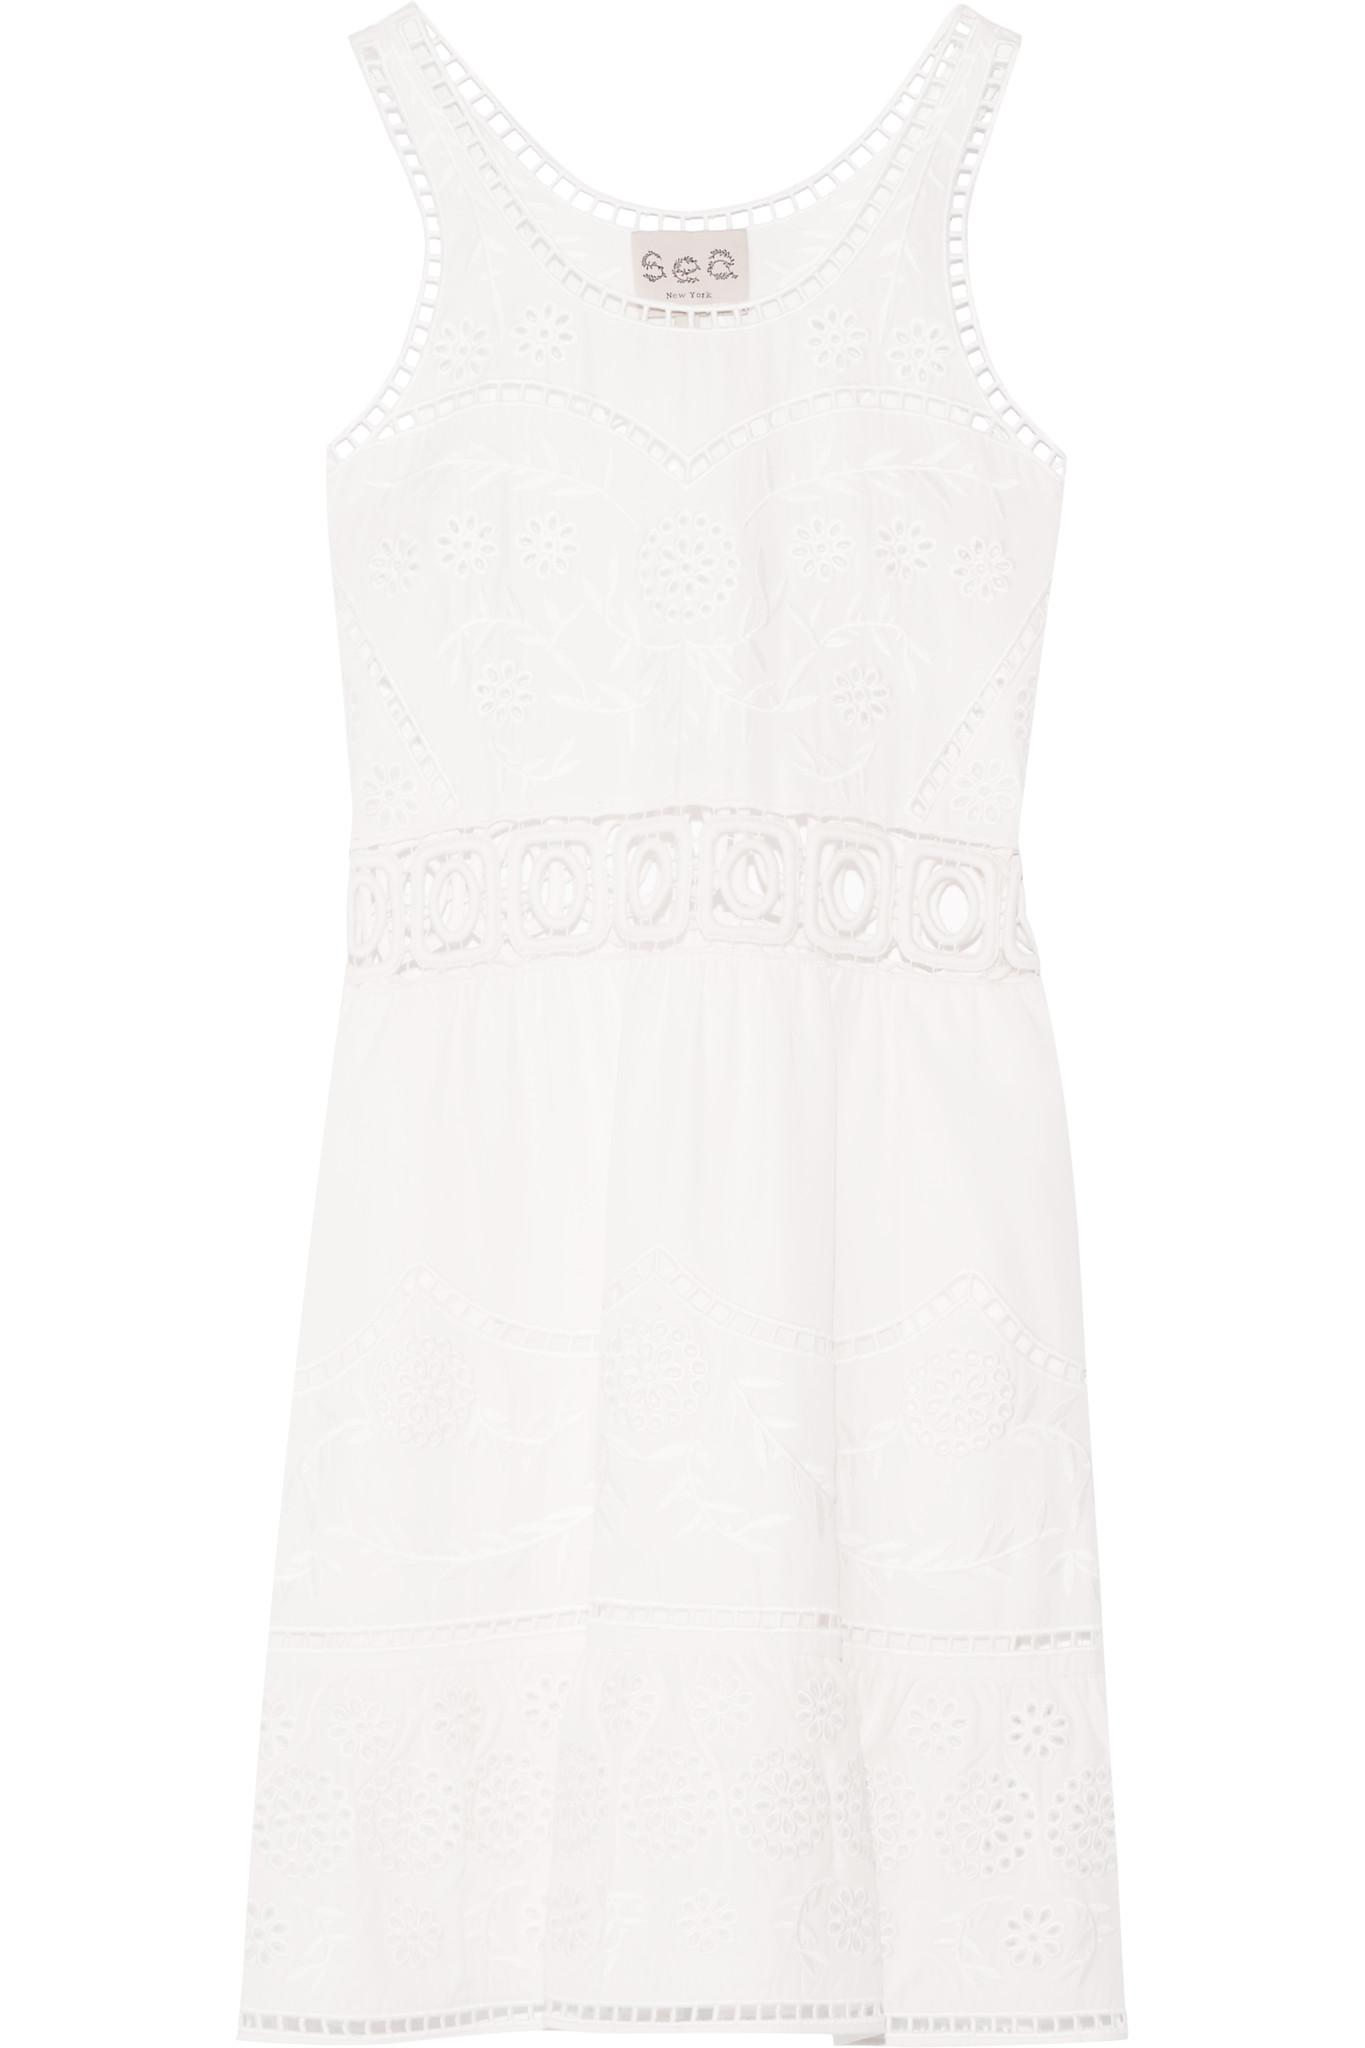 Sea. Women's White Cutout Embroidered Tencel Dress